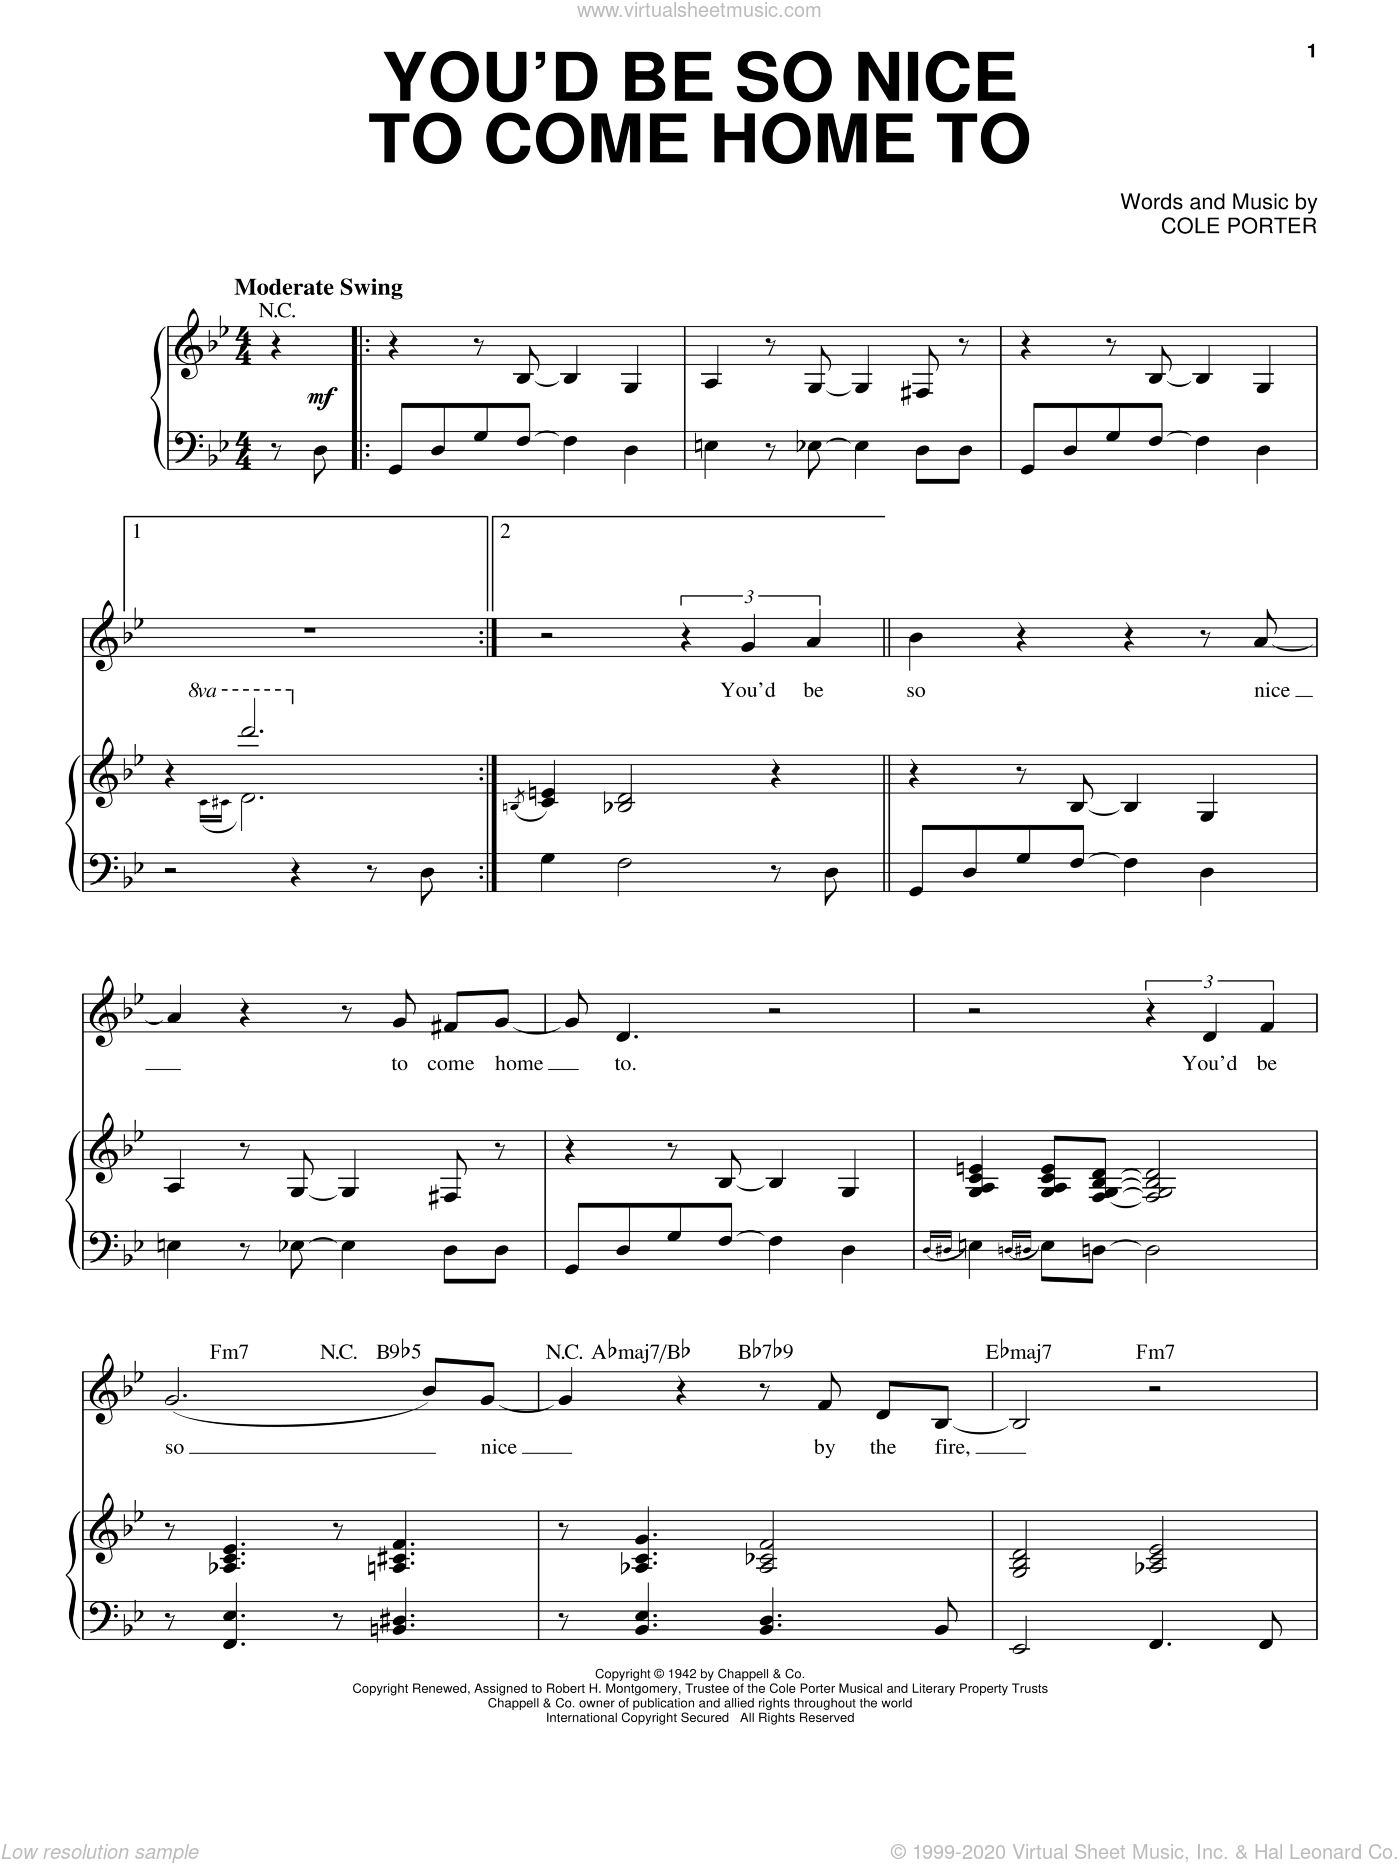 You'd Be So Nice To Come Home To sheet music for voice and piano by Steve Tyrell